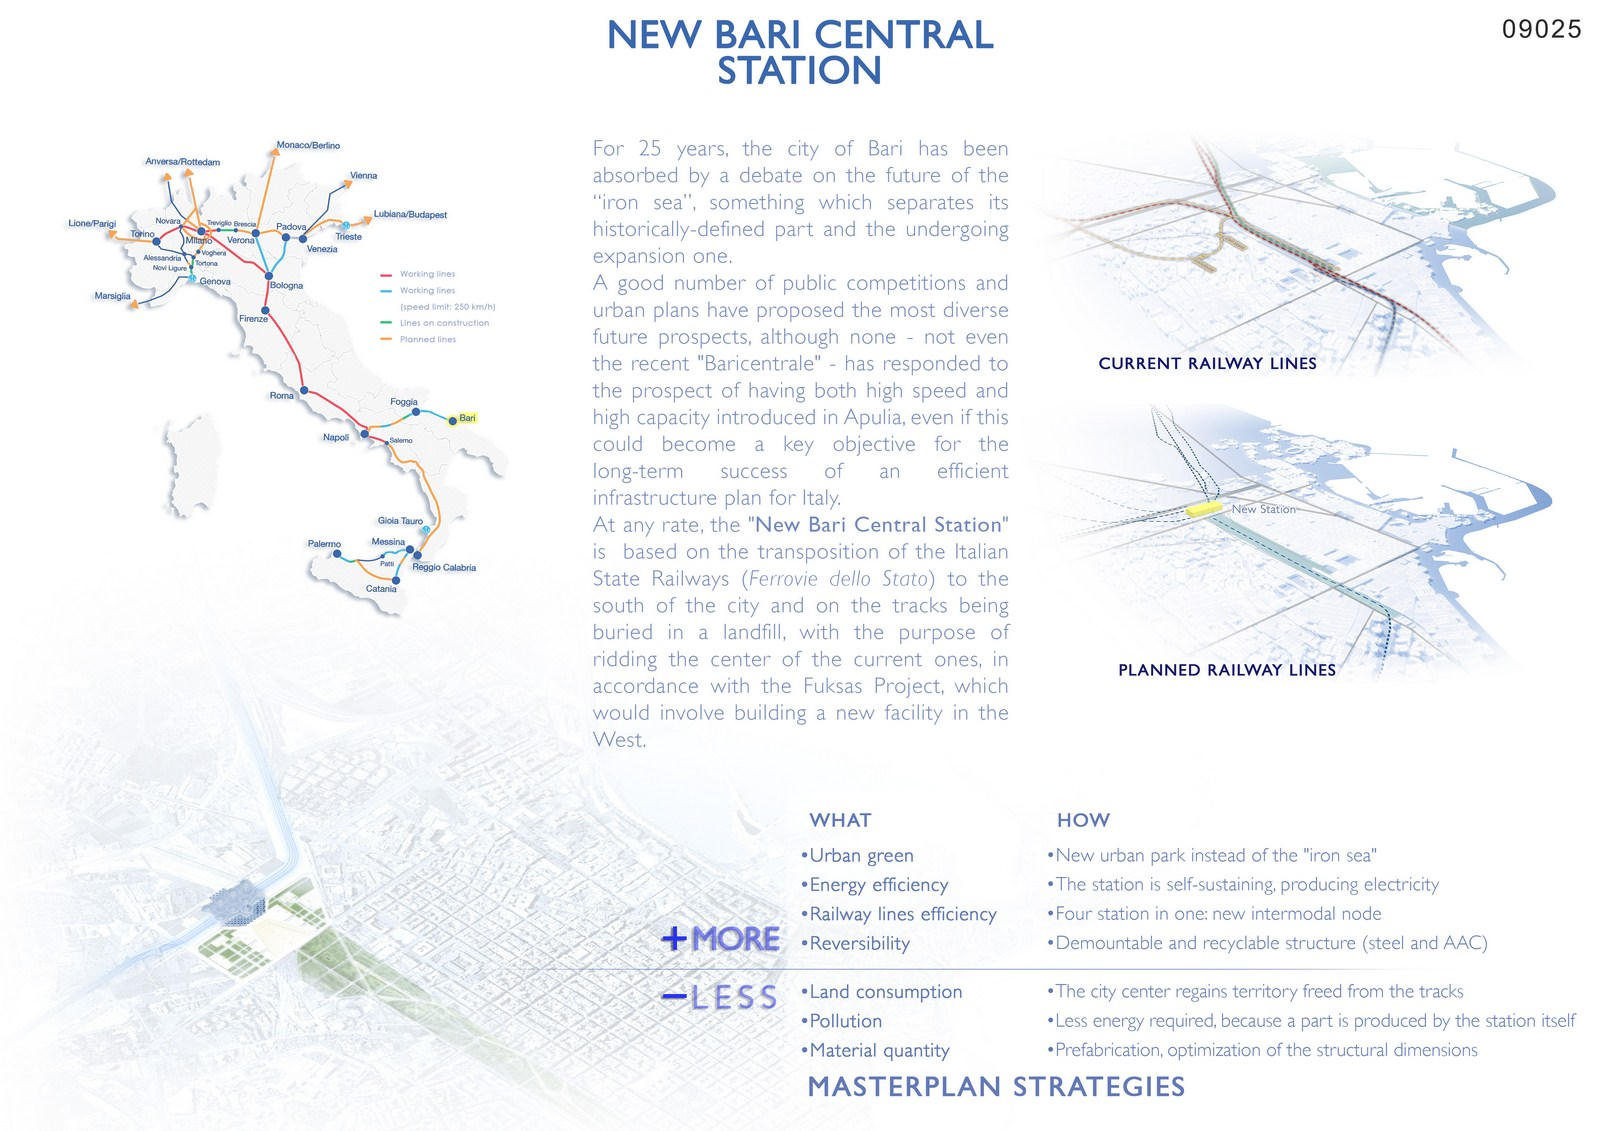 New Bari Central Station By Maurizio Barberio - Sheet1